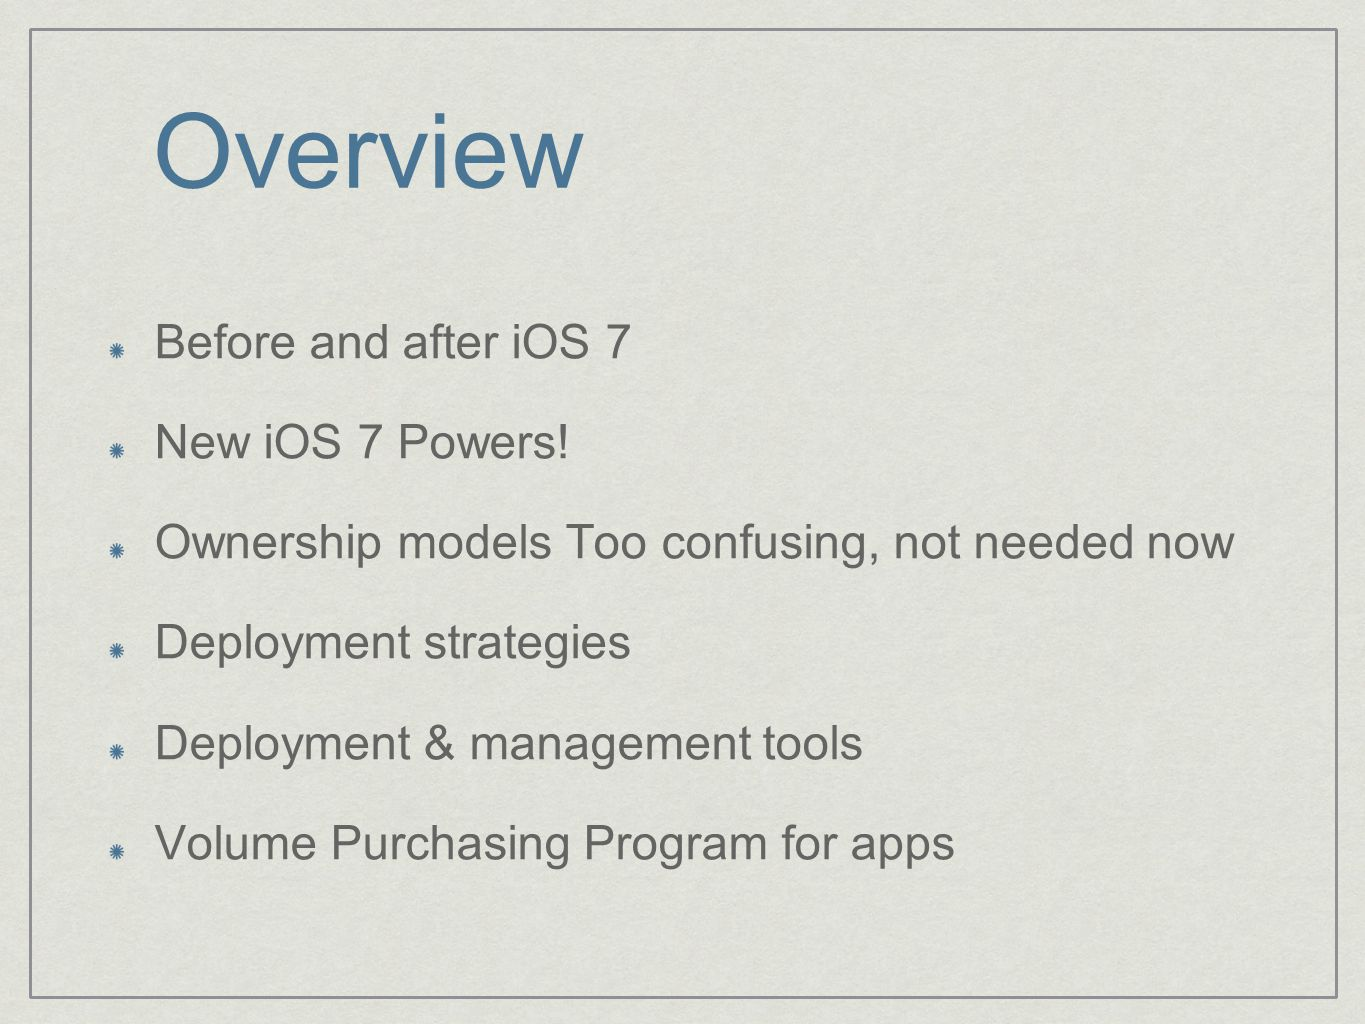 Overview Before and after iOS 7 New iOS 7 Powers! Ownership models Too confusing, not needed now Deployment strategies Deployment & management tools V